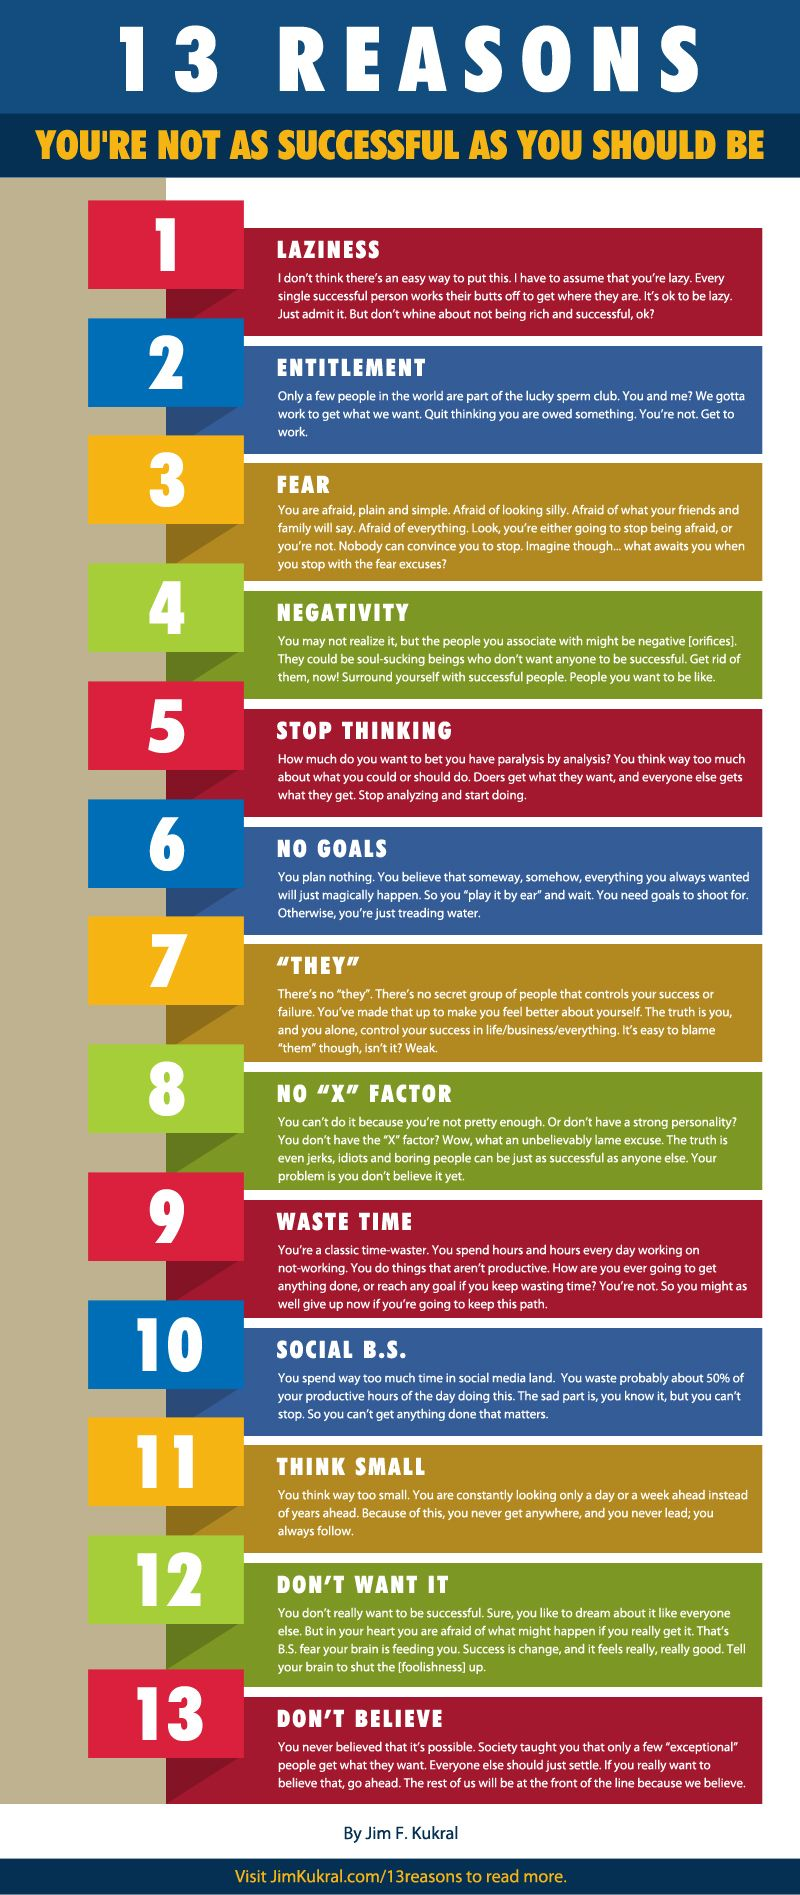 Reasons for not to be as successful as you should be  http://cdn-5.lifehack.org/wp-content/files/2013/06/13-reasons-infographic1.jpg